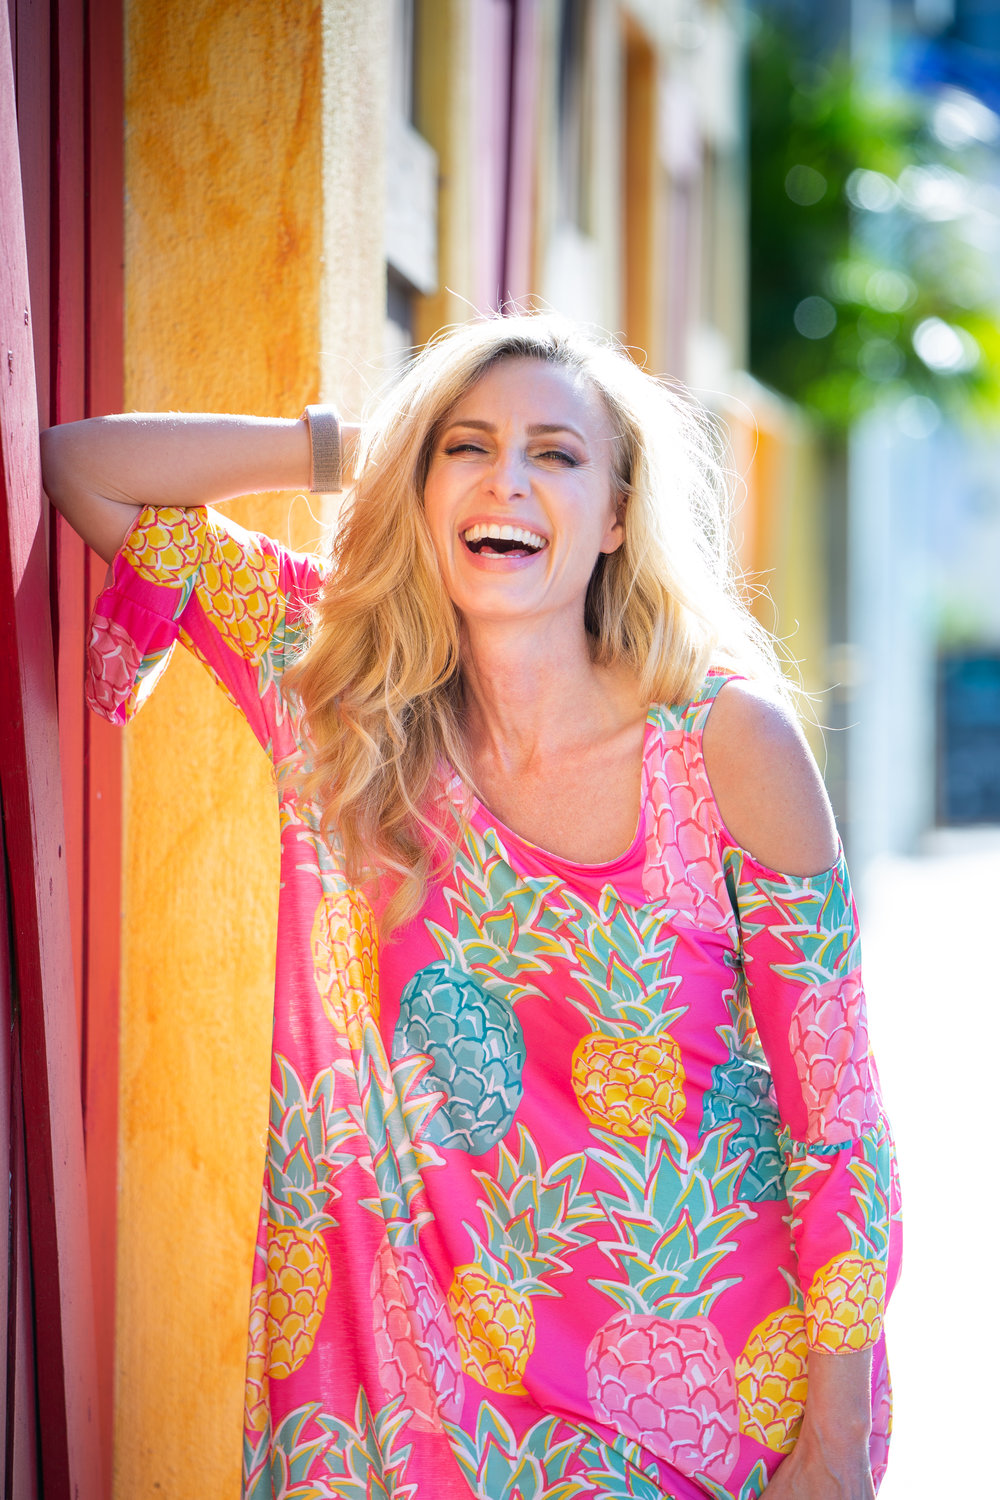 Model laughing in bright pink dress.jpg